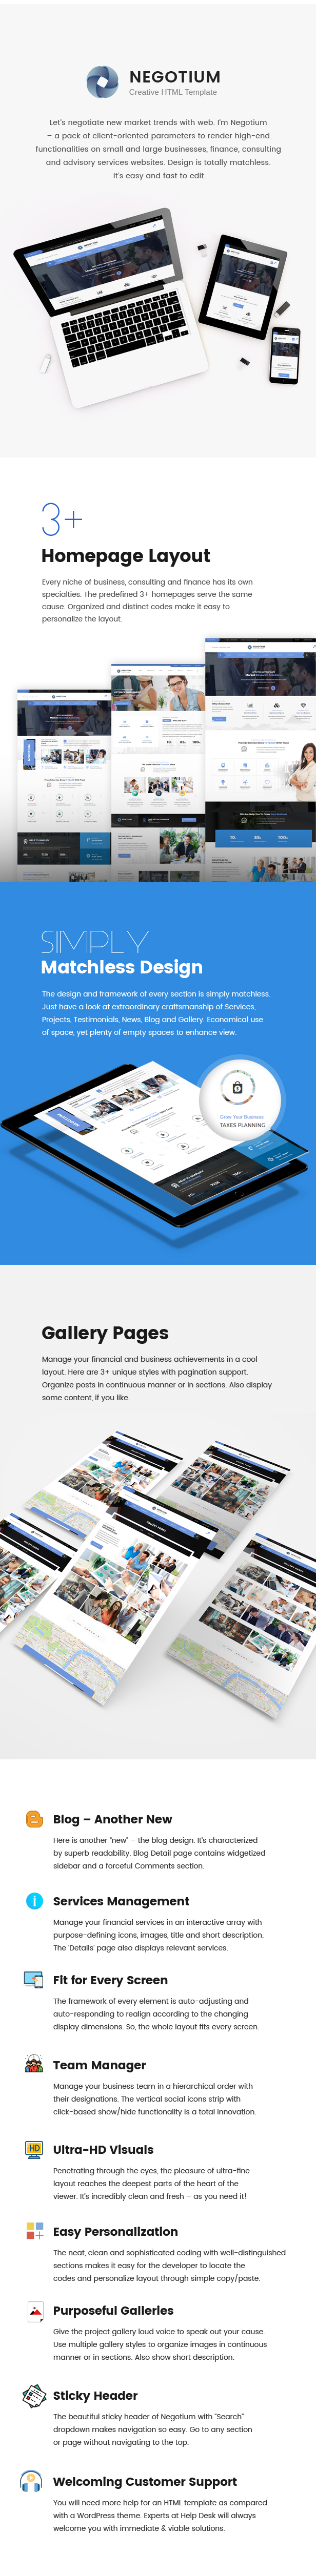 Negotium - Business, Finance, Consultation Multipurpose HTML Template - 1